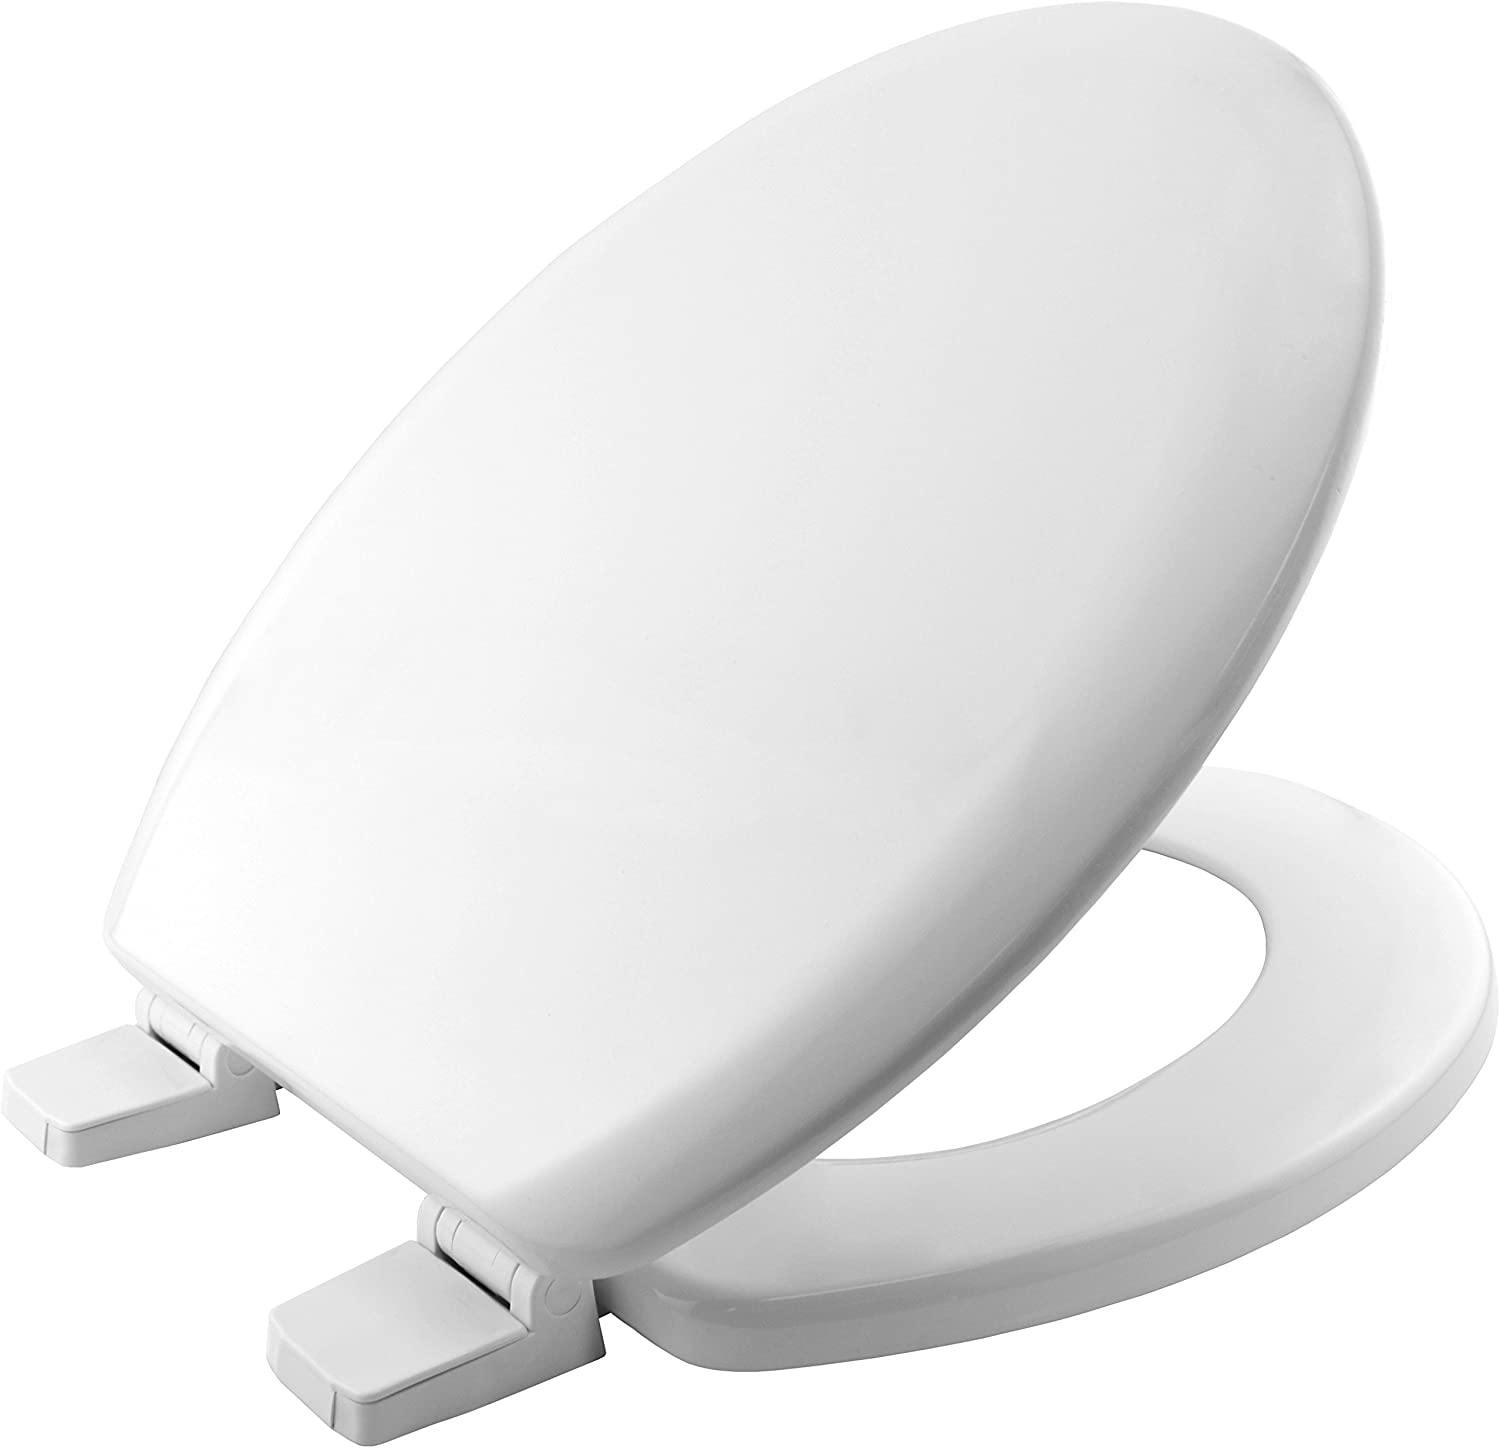 Bemis Chicago STAY TIGHT Toilet Seat - White